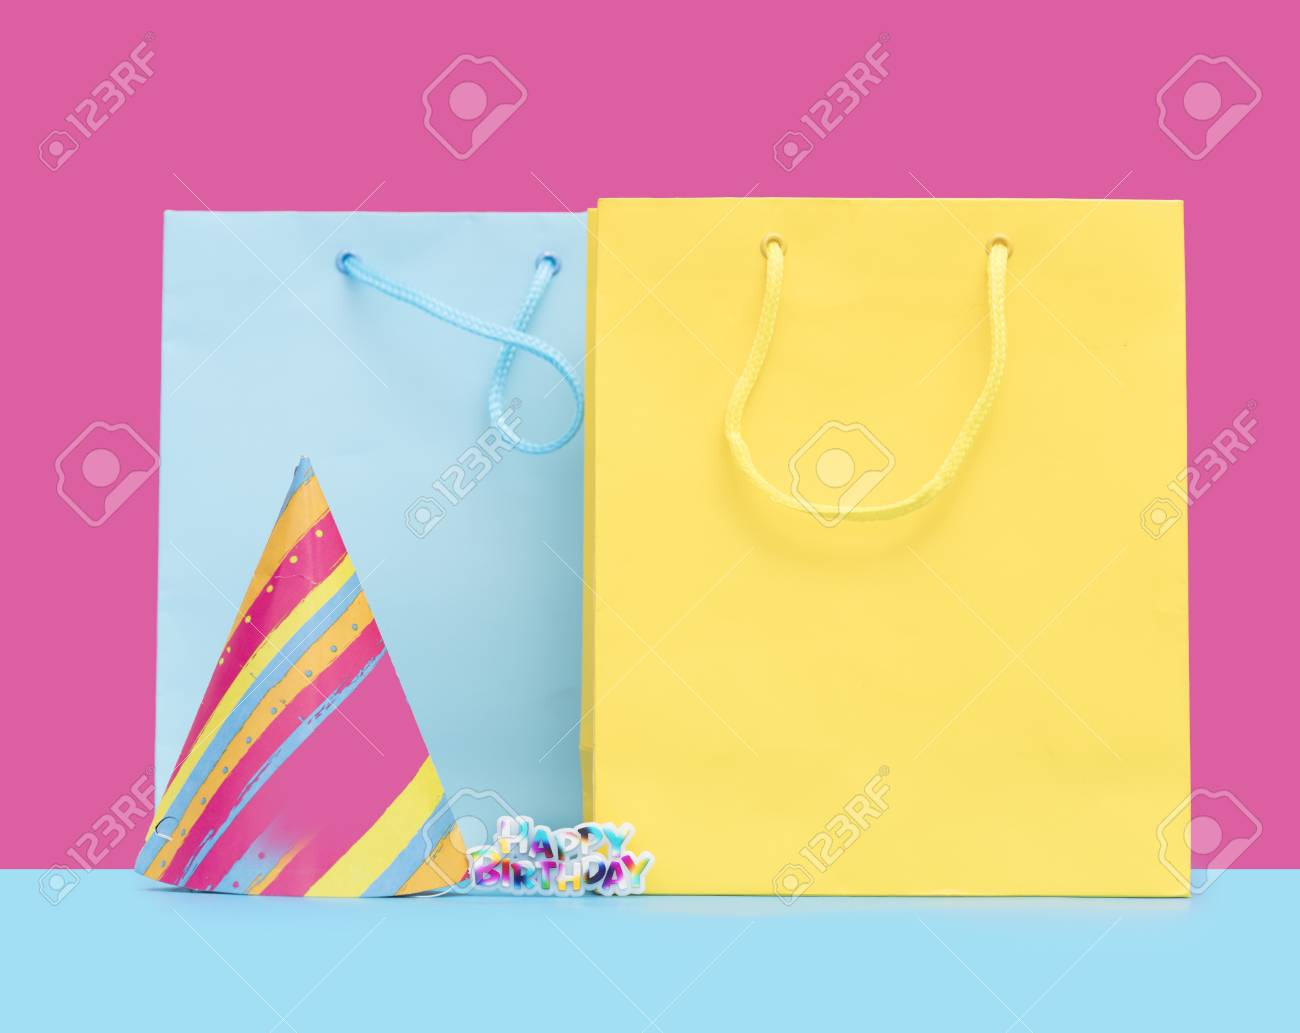 Cool Yellow And Blue Shopping Bags Birthday Hat Sticker In Front Of The Wonderful